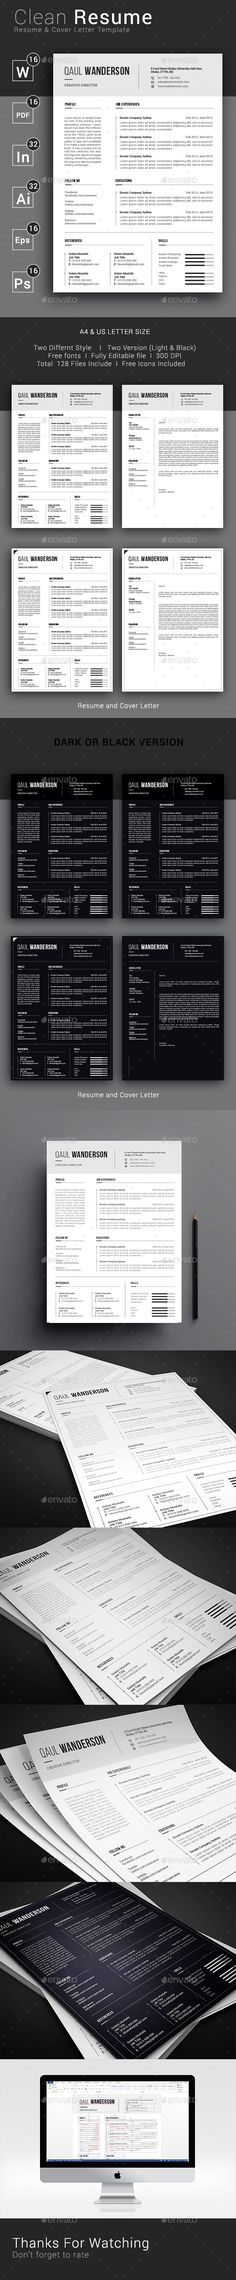 Clean Resume / CV Template PSD, Vector EPS, InDesign INDD, AI Illustrator, MS Word #modernresume #simple #coverletter